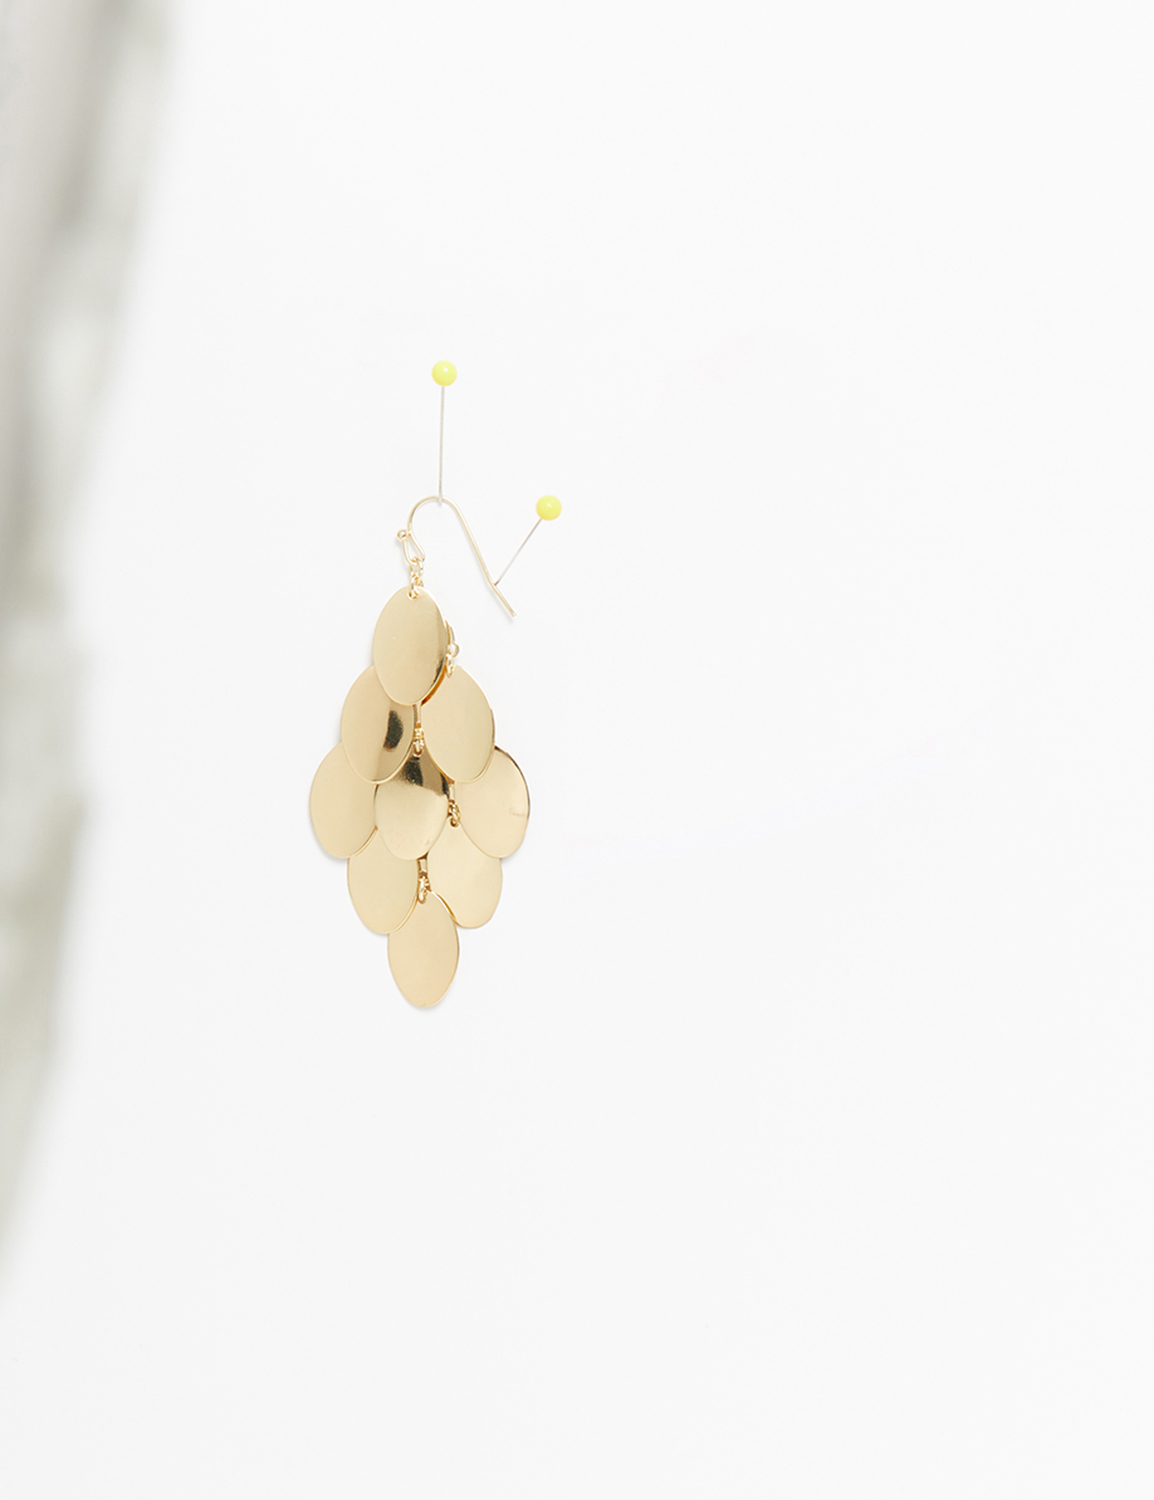 single gold disk chandelier earring on white background.